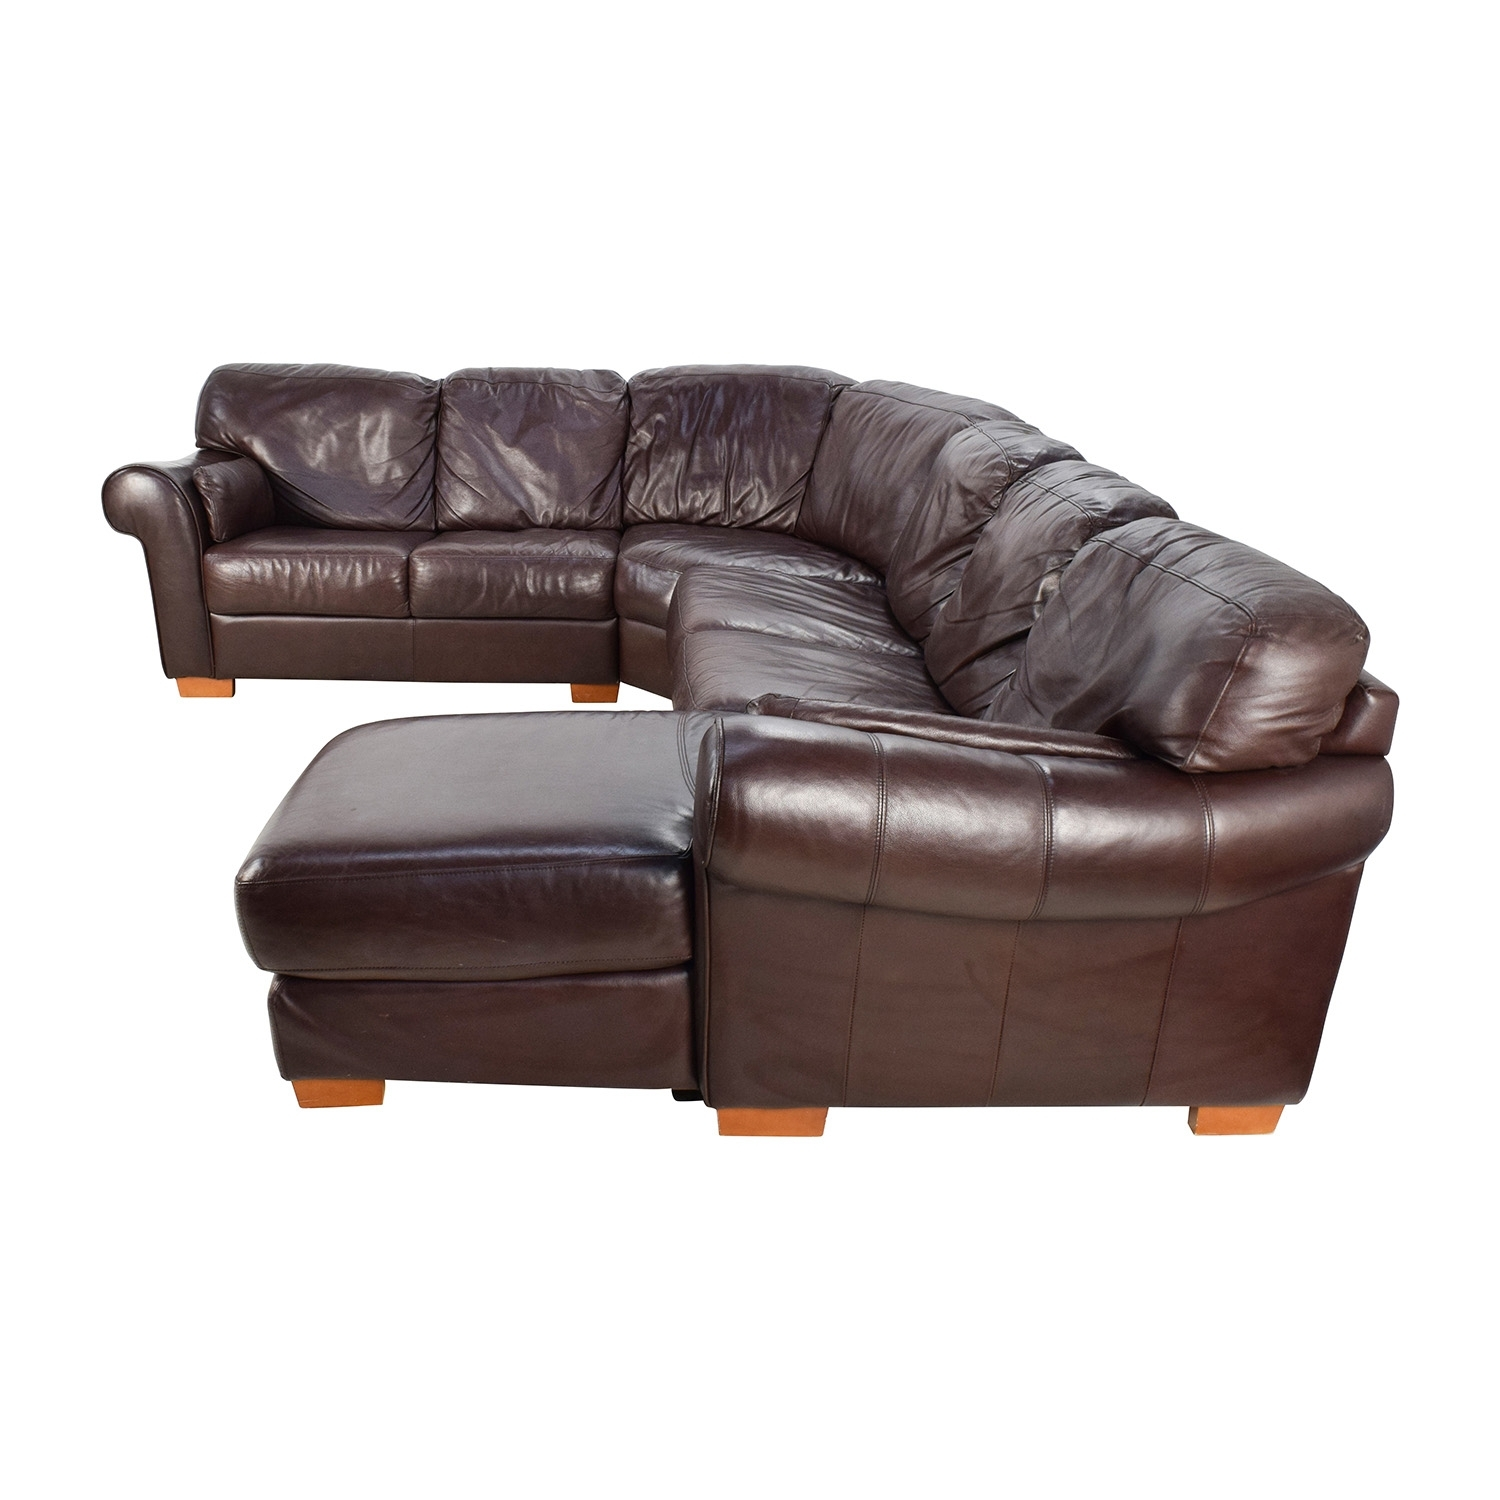 63% Off – Raymour & Flanigan Raymour & Flanigan 4 Piece Leather With Raymour And Flanigan Sectional Sofas (Photo 5 of 10)